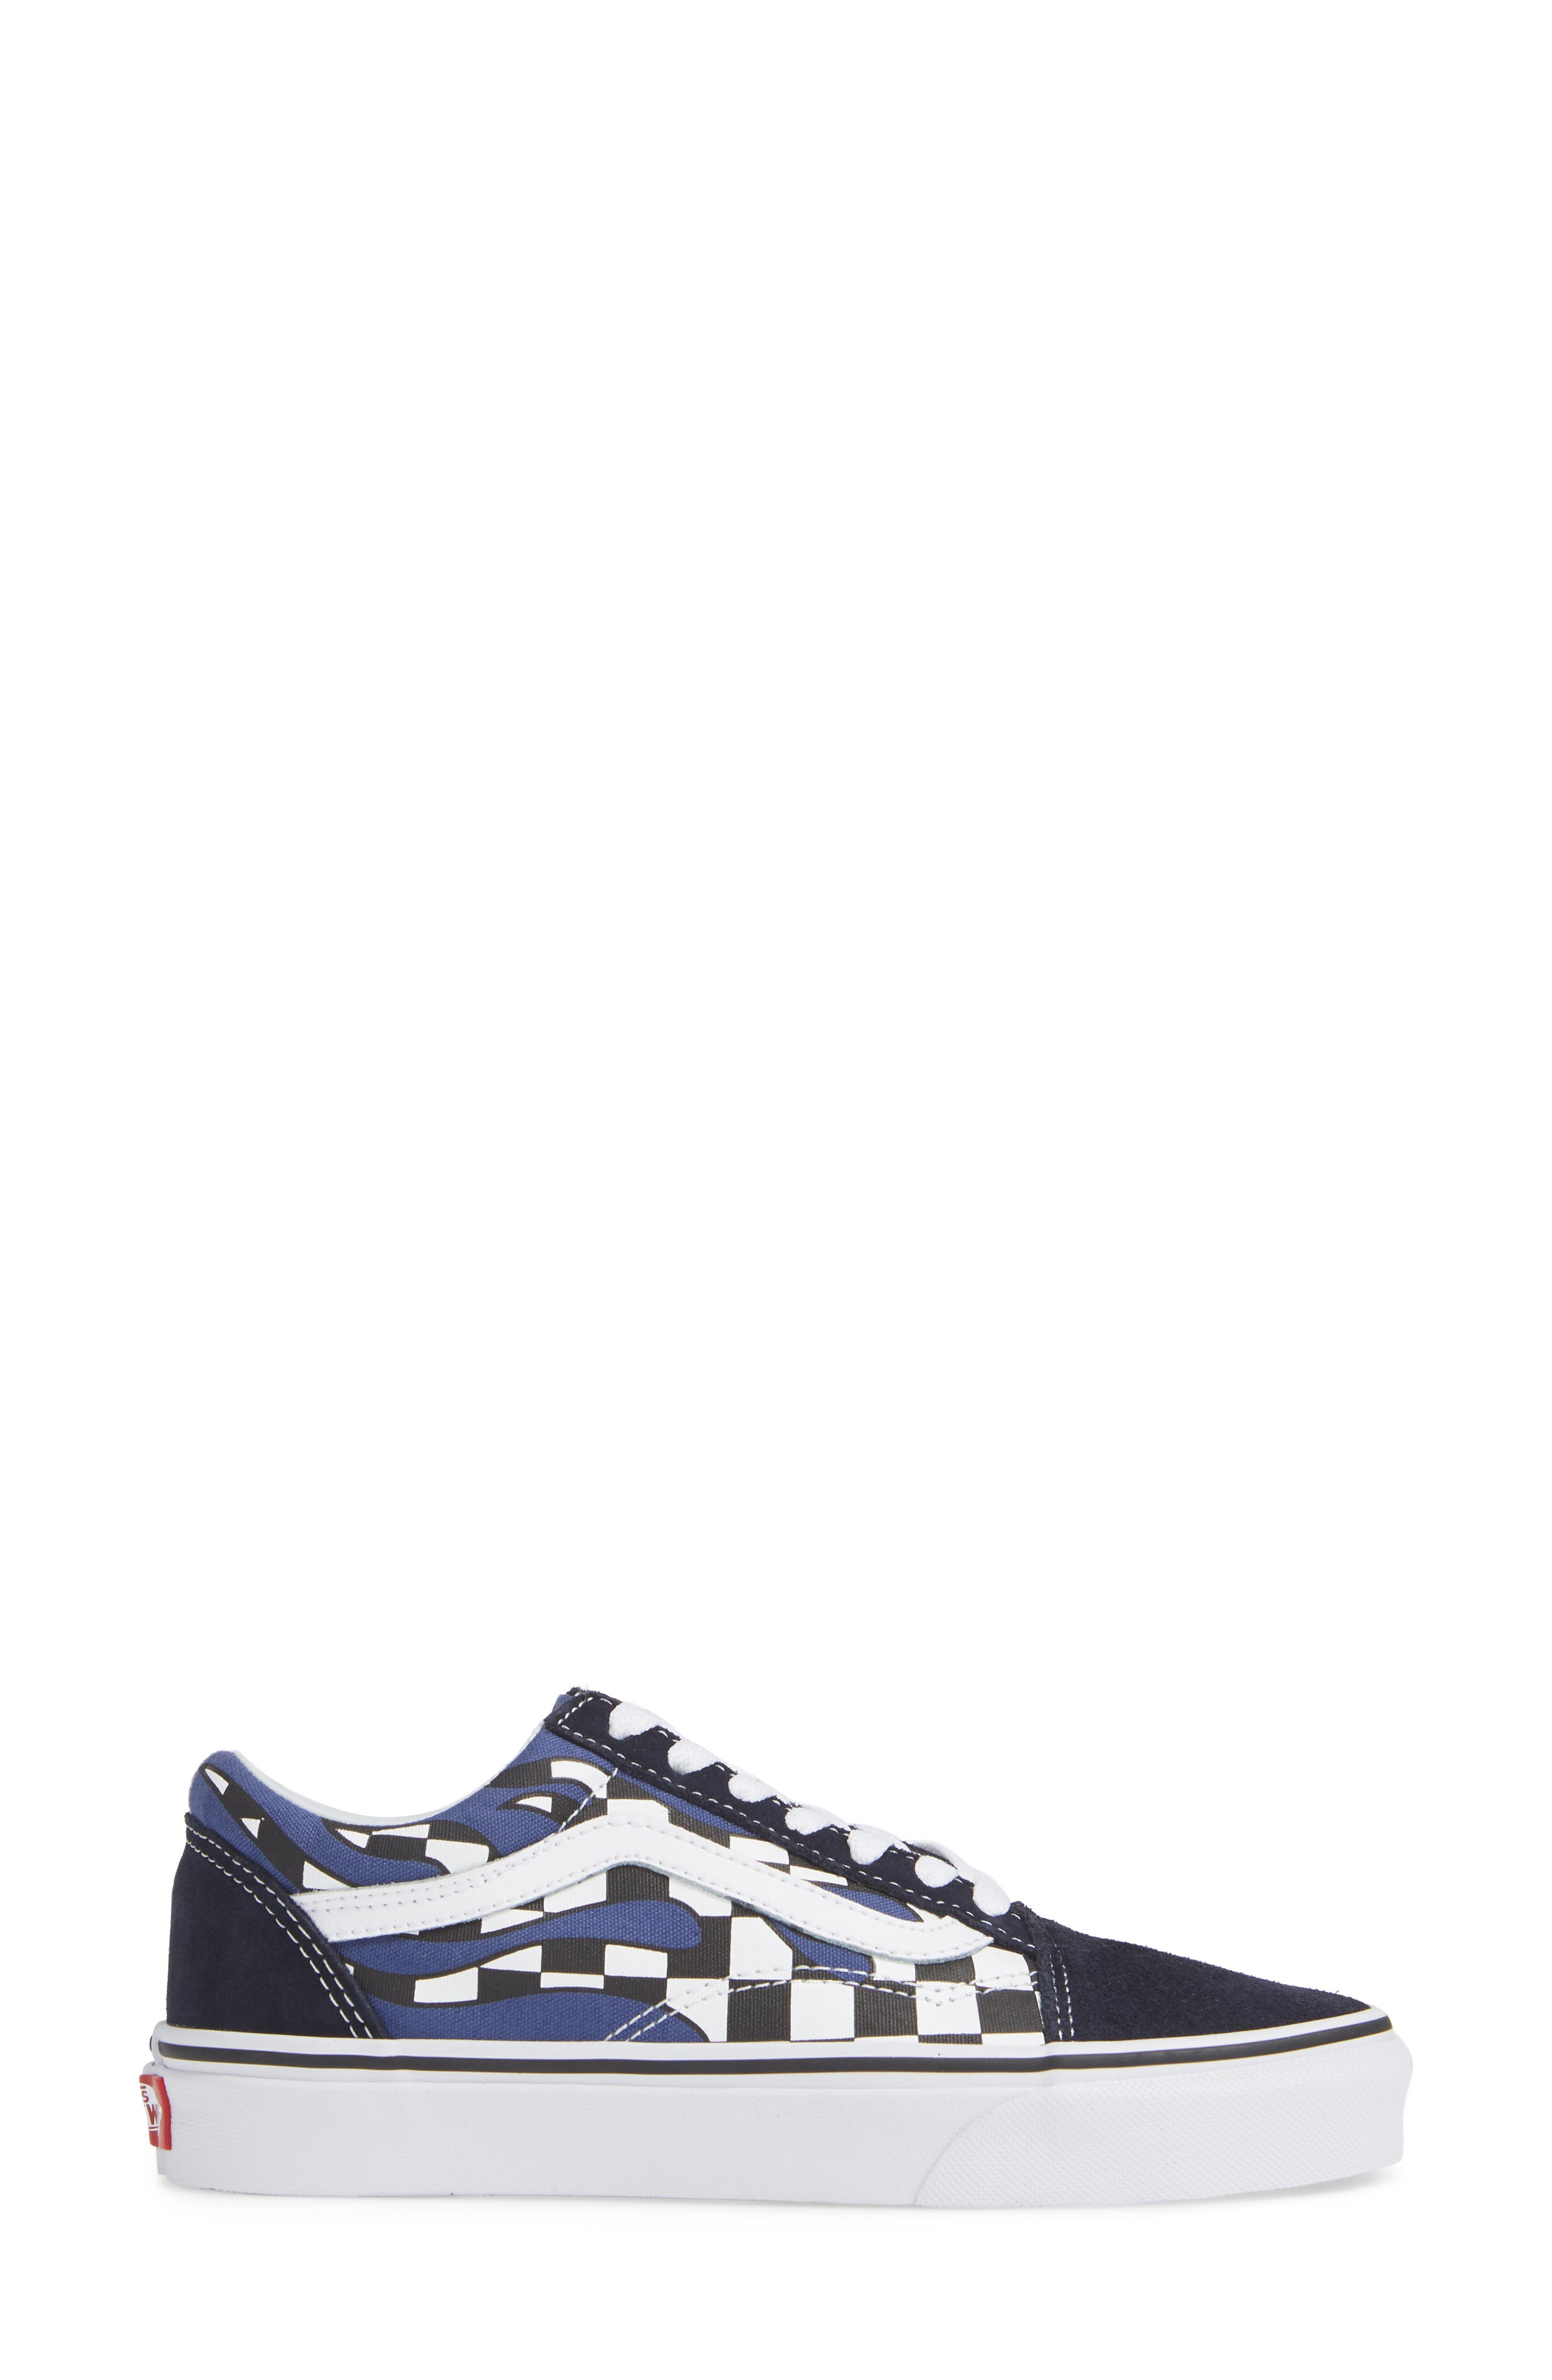 Old Skool Sneaker,                             Alternate thumbnail 3, color,                             NAVY/ TRUE WHITE LEATHER